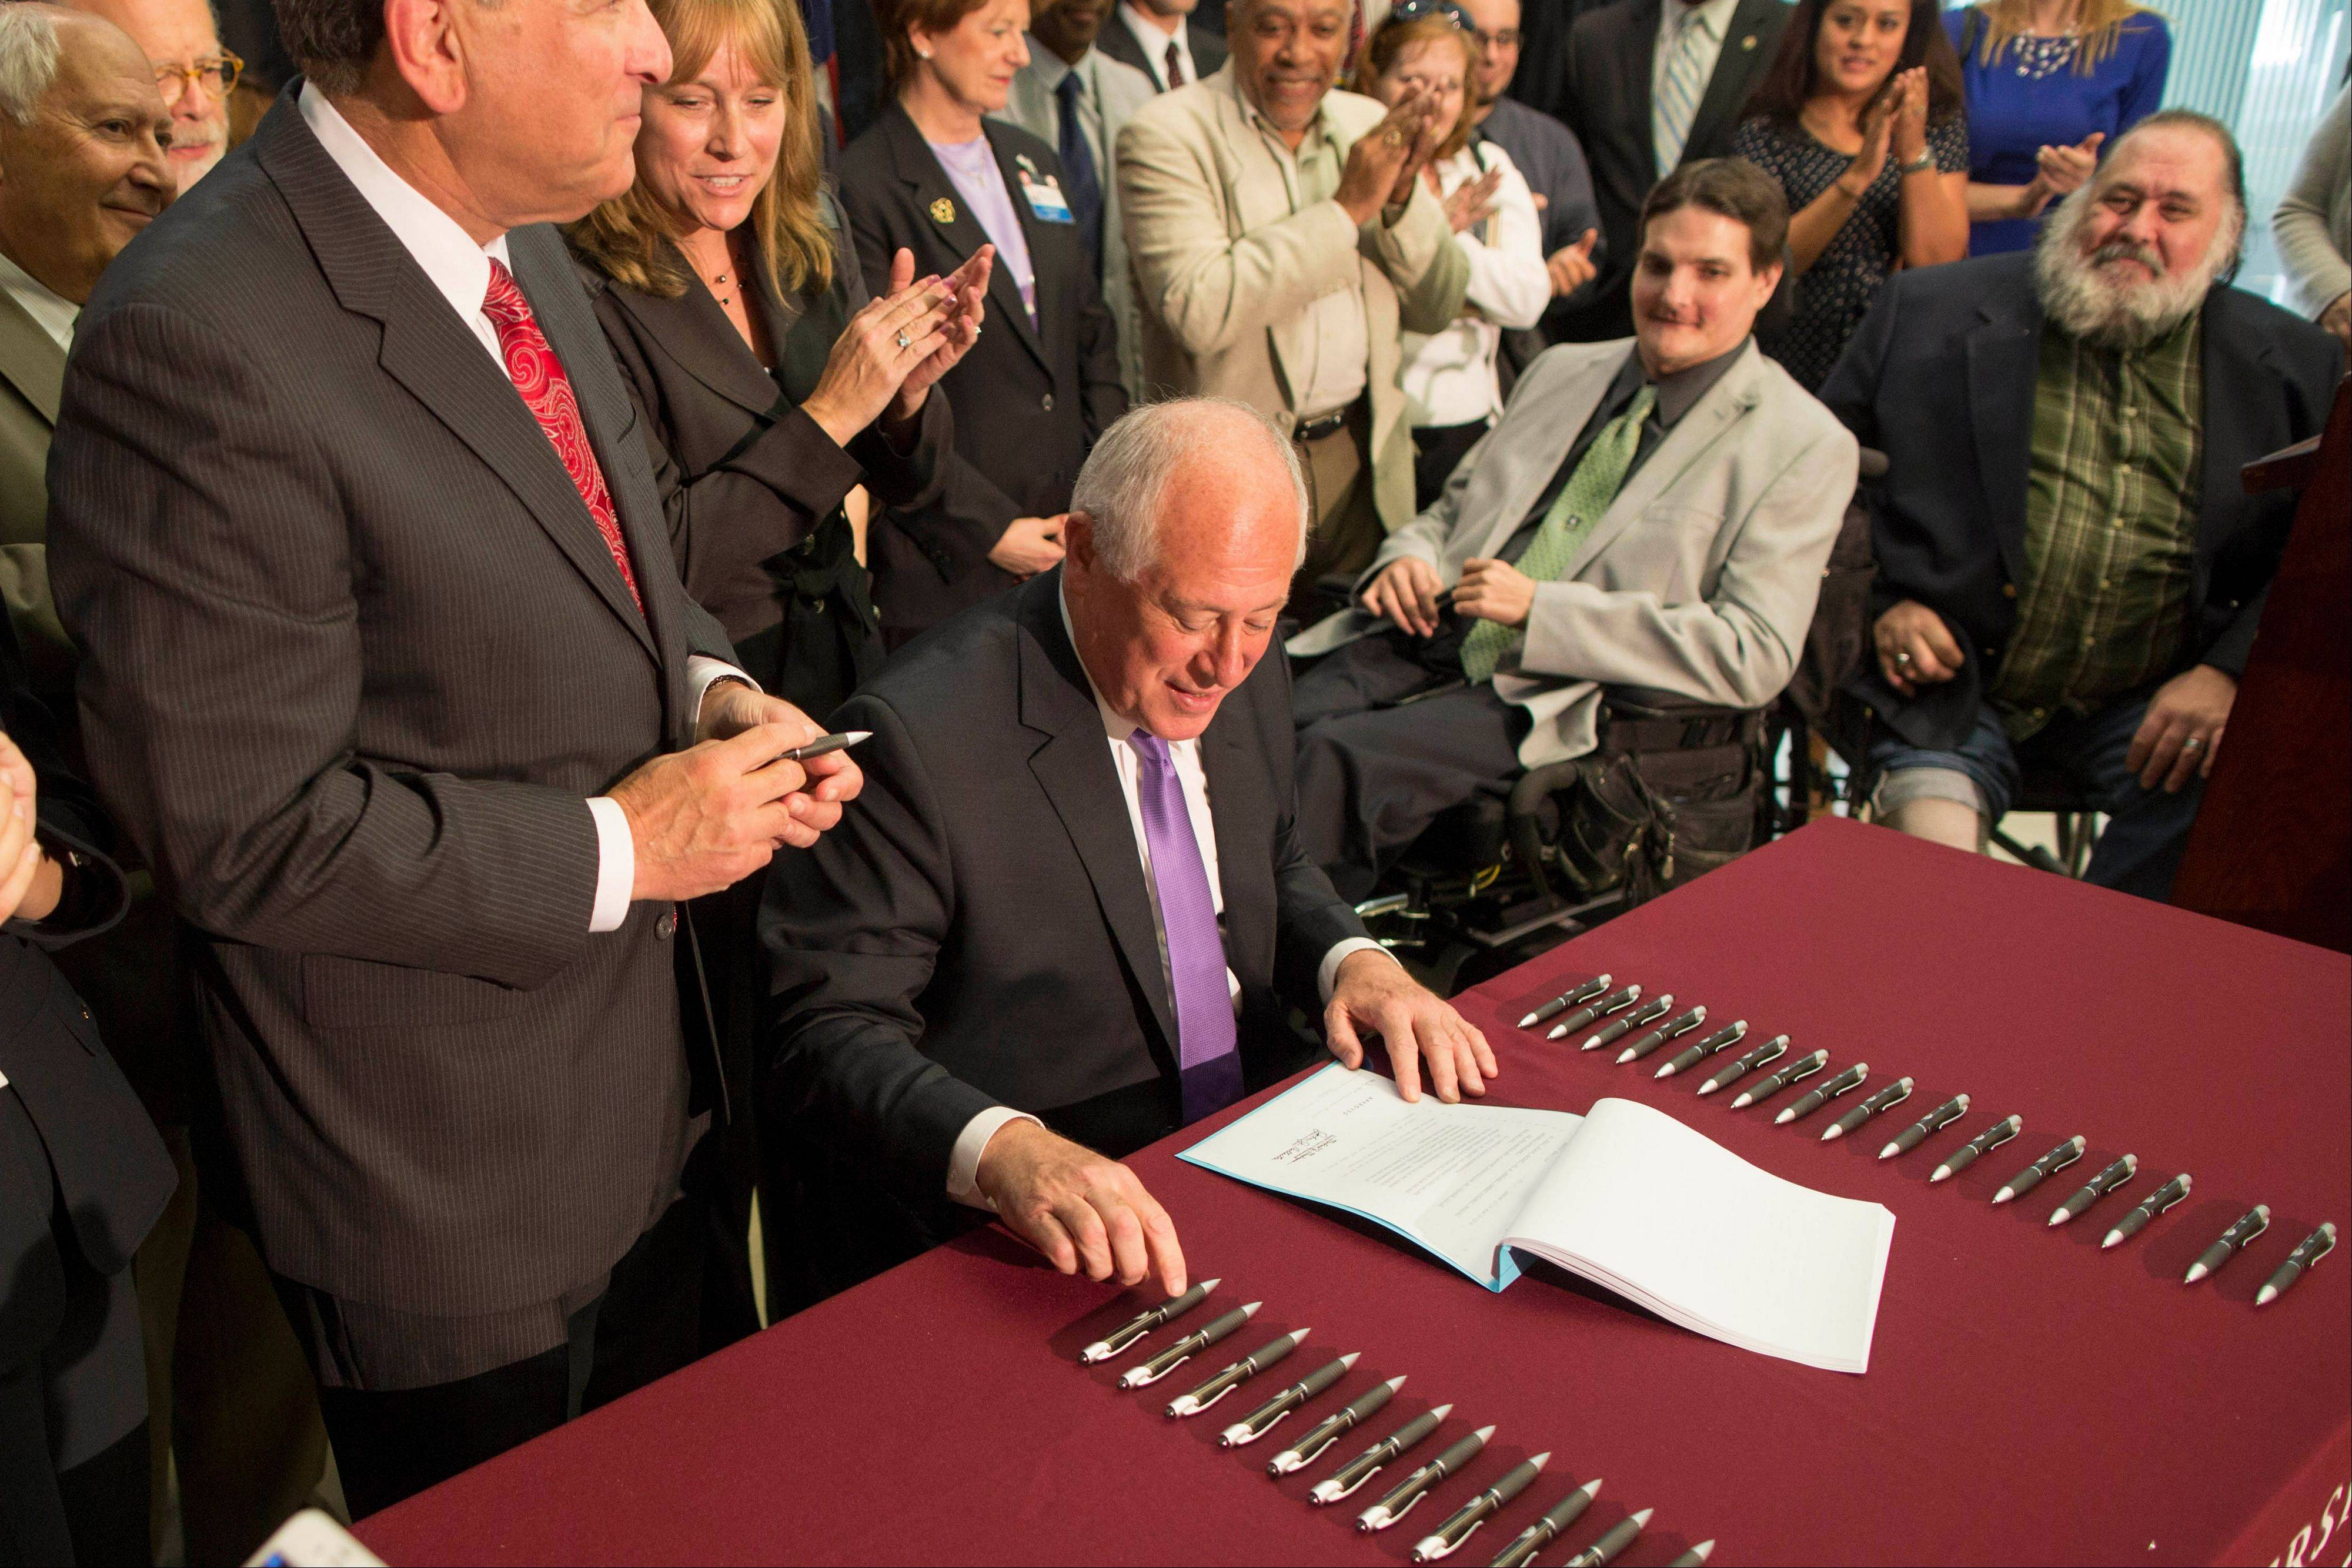 Gov. Pat Quinn signs a bill for medical marijuana Thursday at the University of Chicago Center for Care and Discovery. Patients will be allowed up to 2.5 ounces at a time.